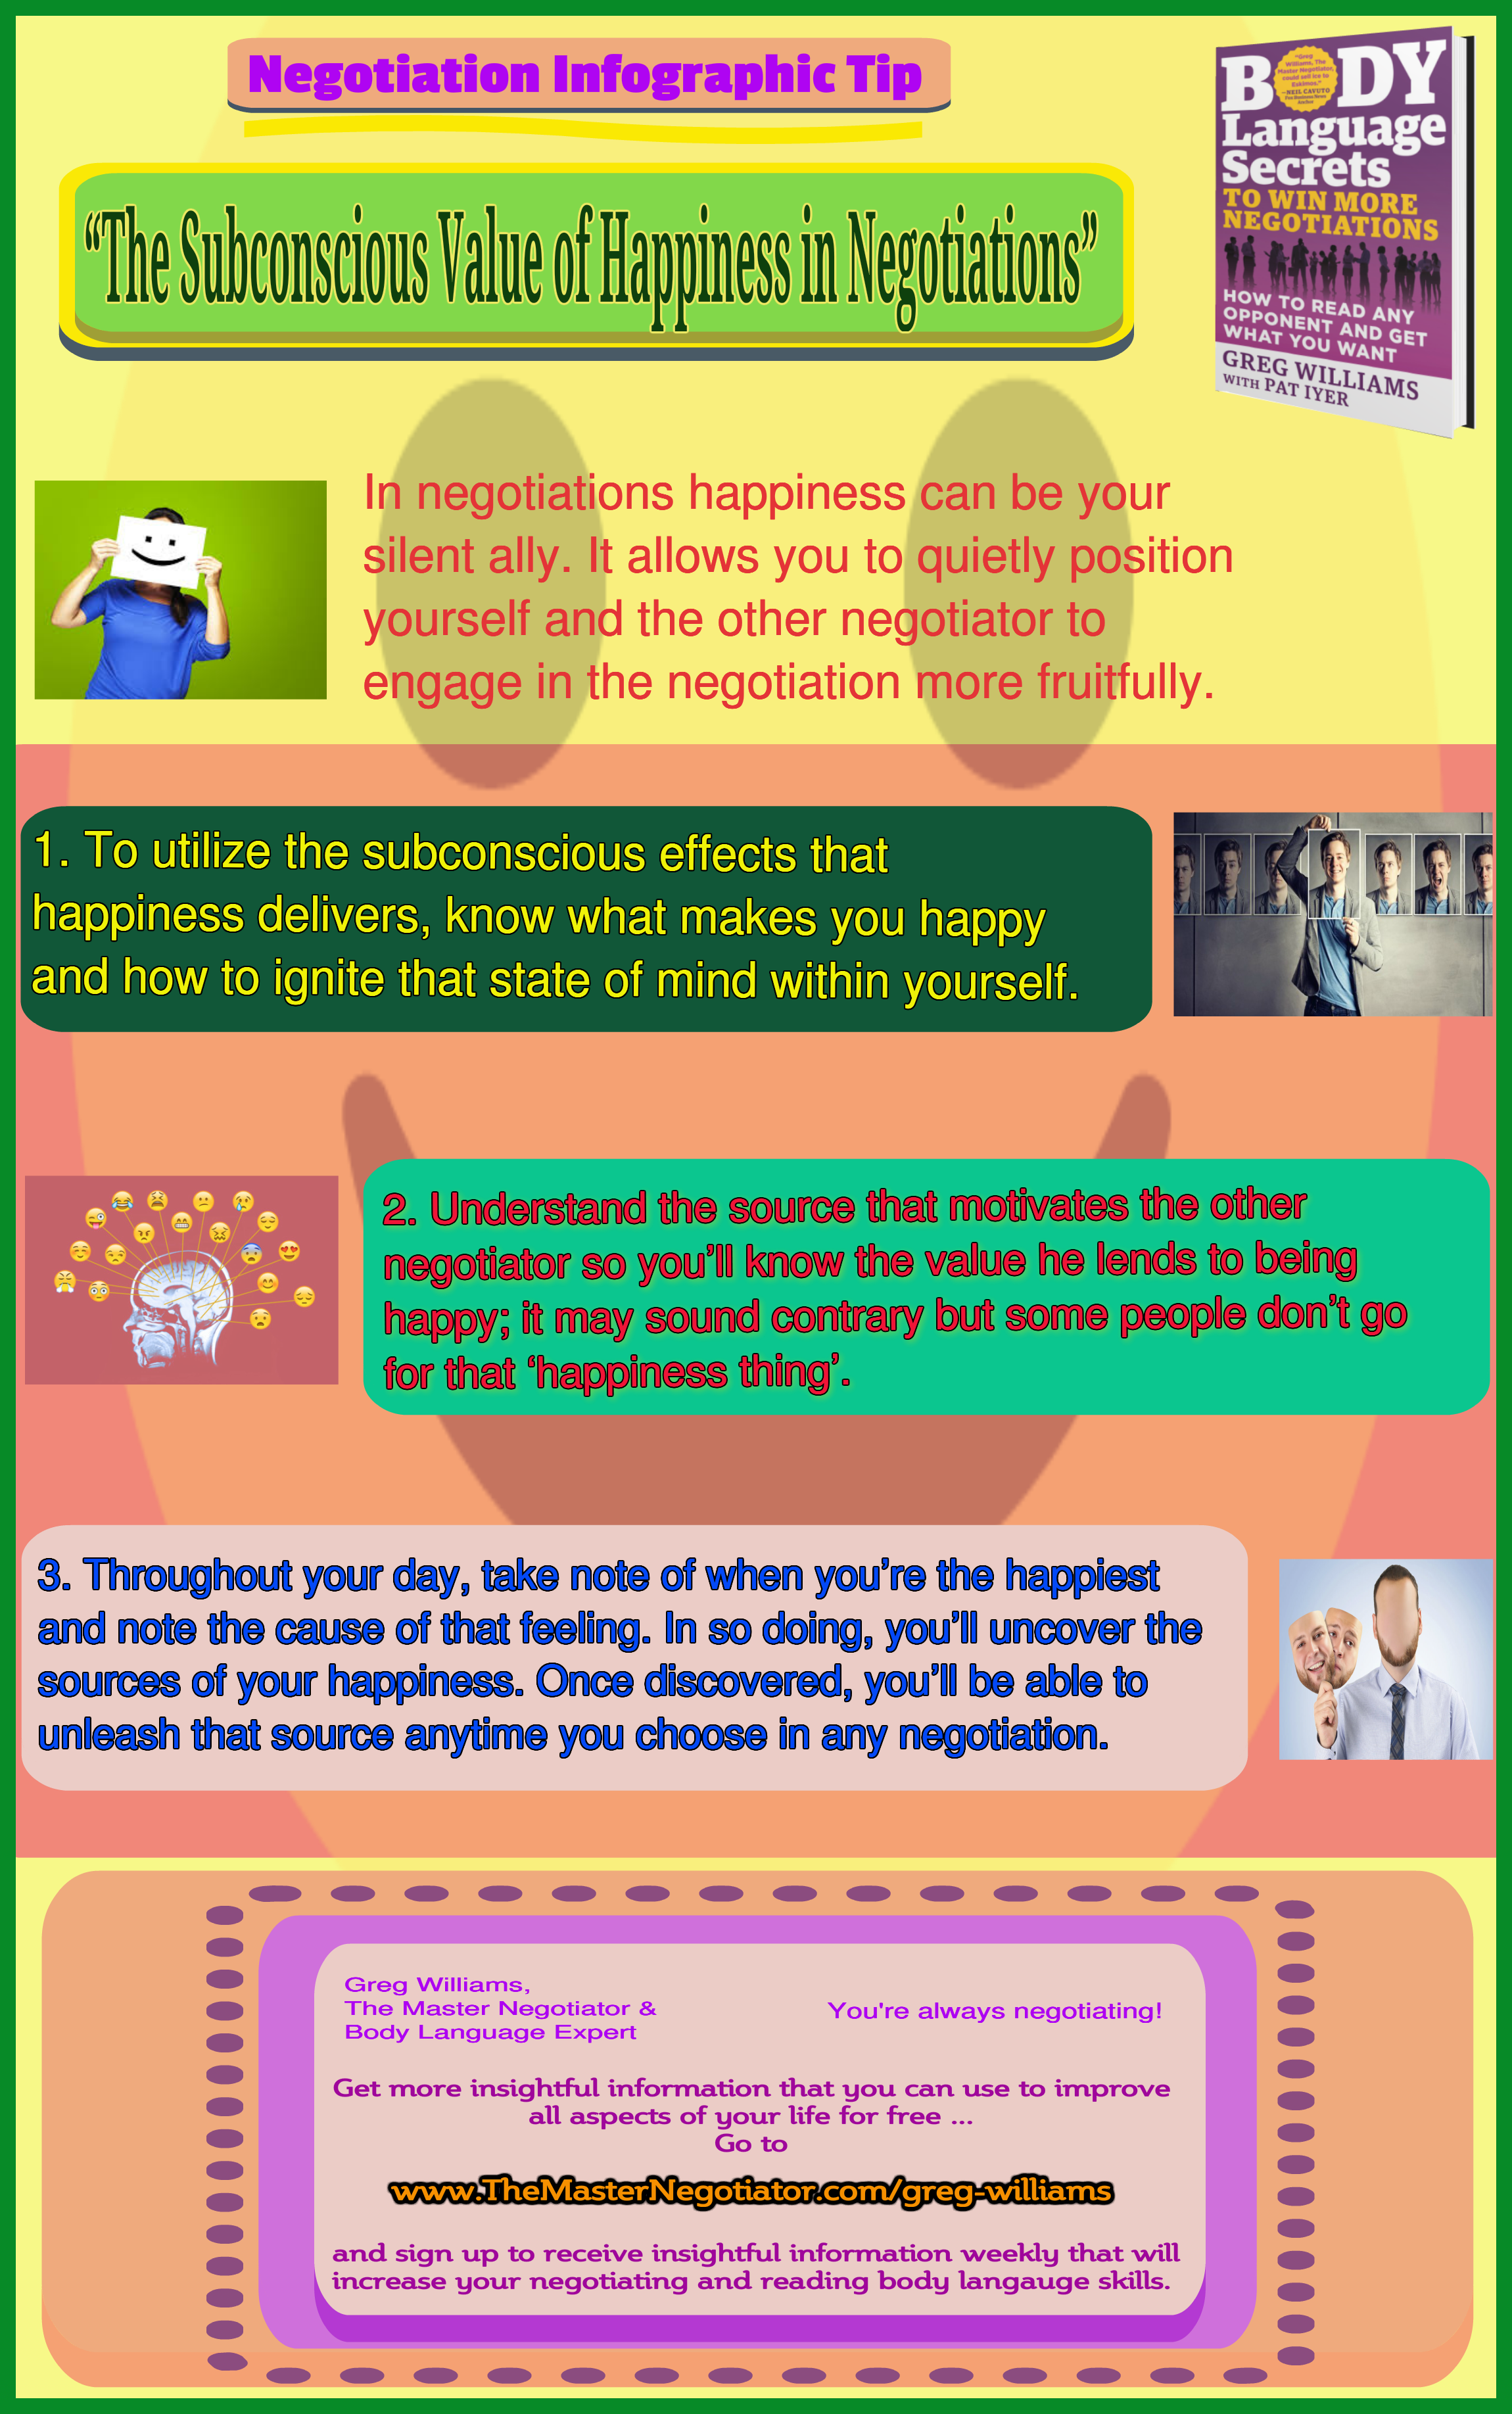 The Subconscious Value of Happiness in Negotiations